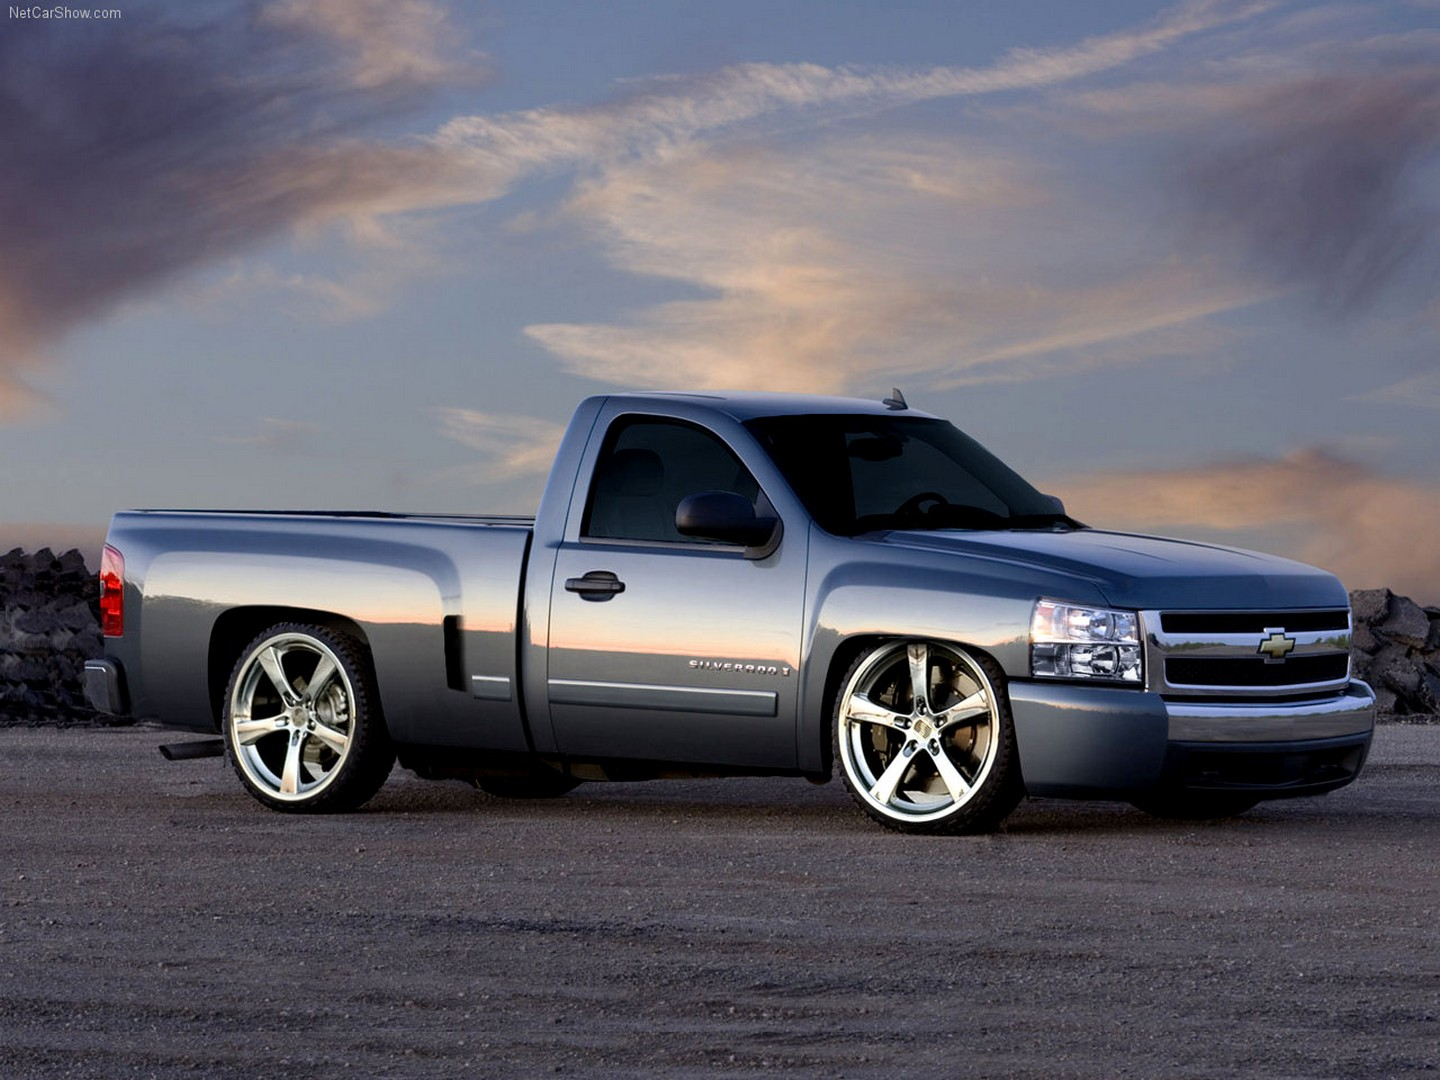 Amazing Photo Collection Cool Chevy Truck Wallpapers With Trucks Lifted Wallpaper